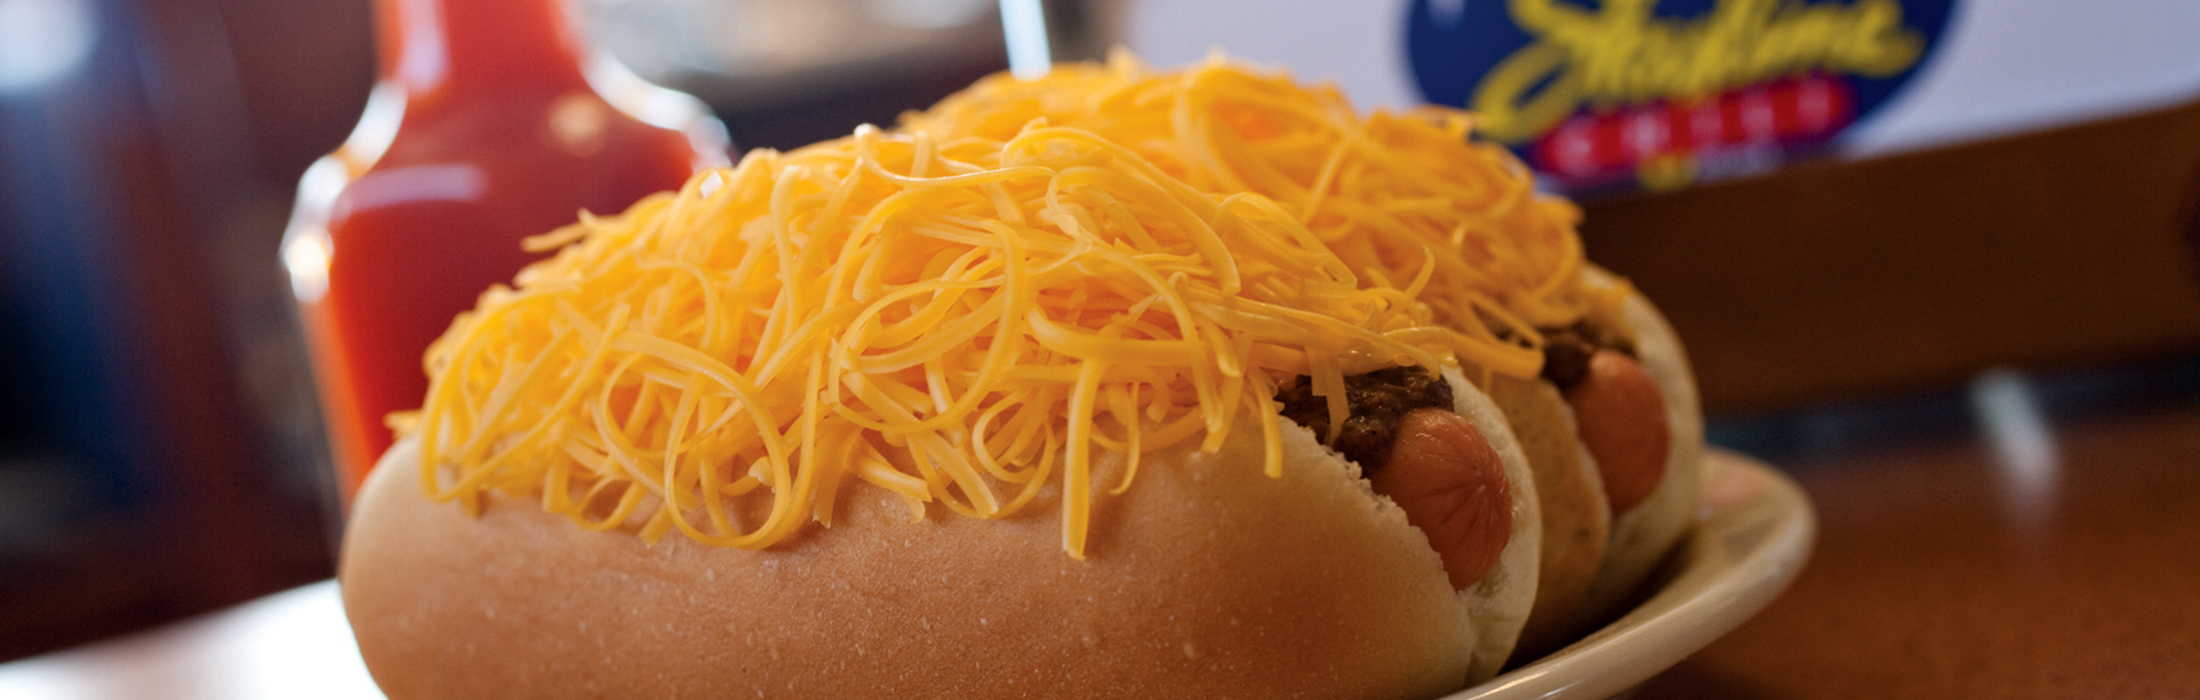 Skyline Chili Cheese Coneys